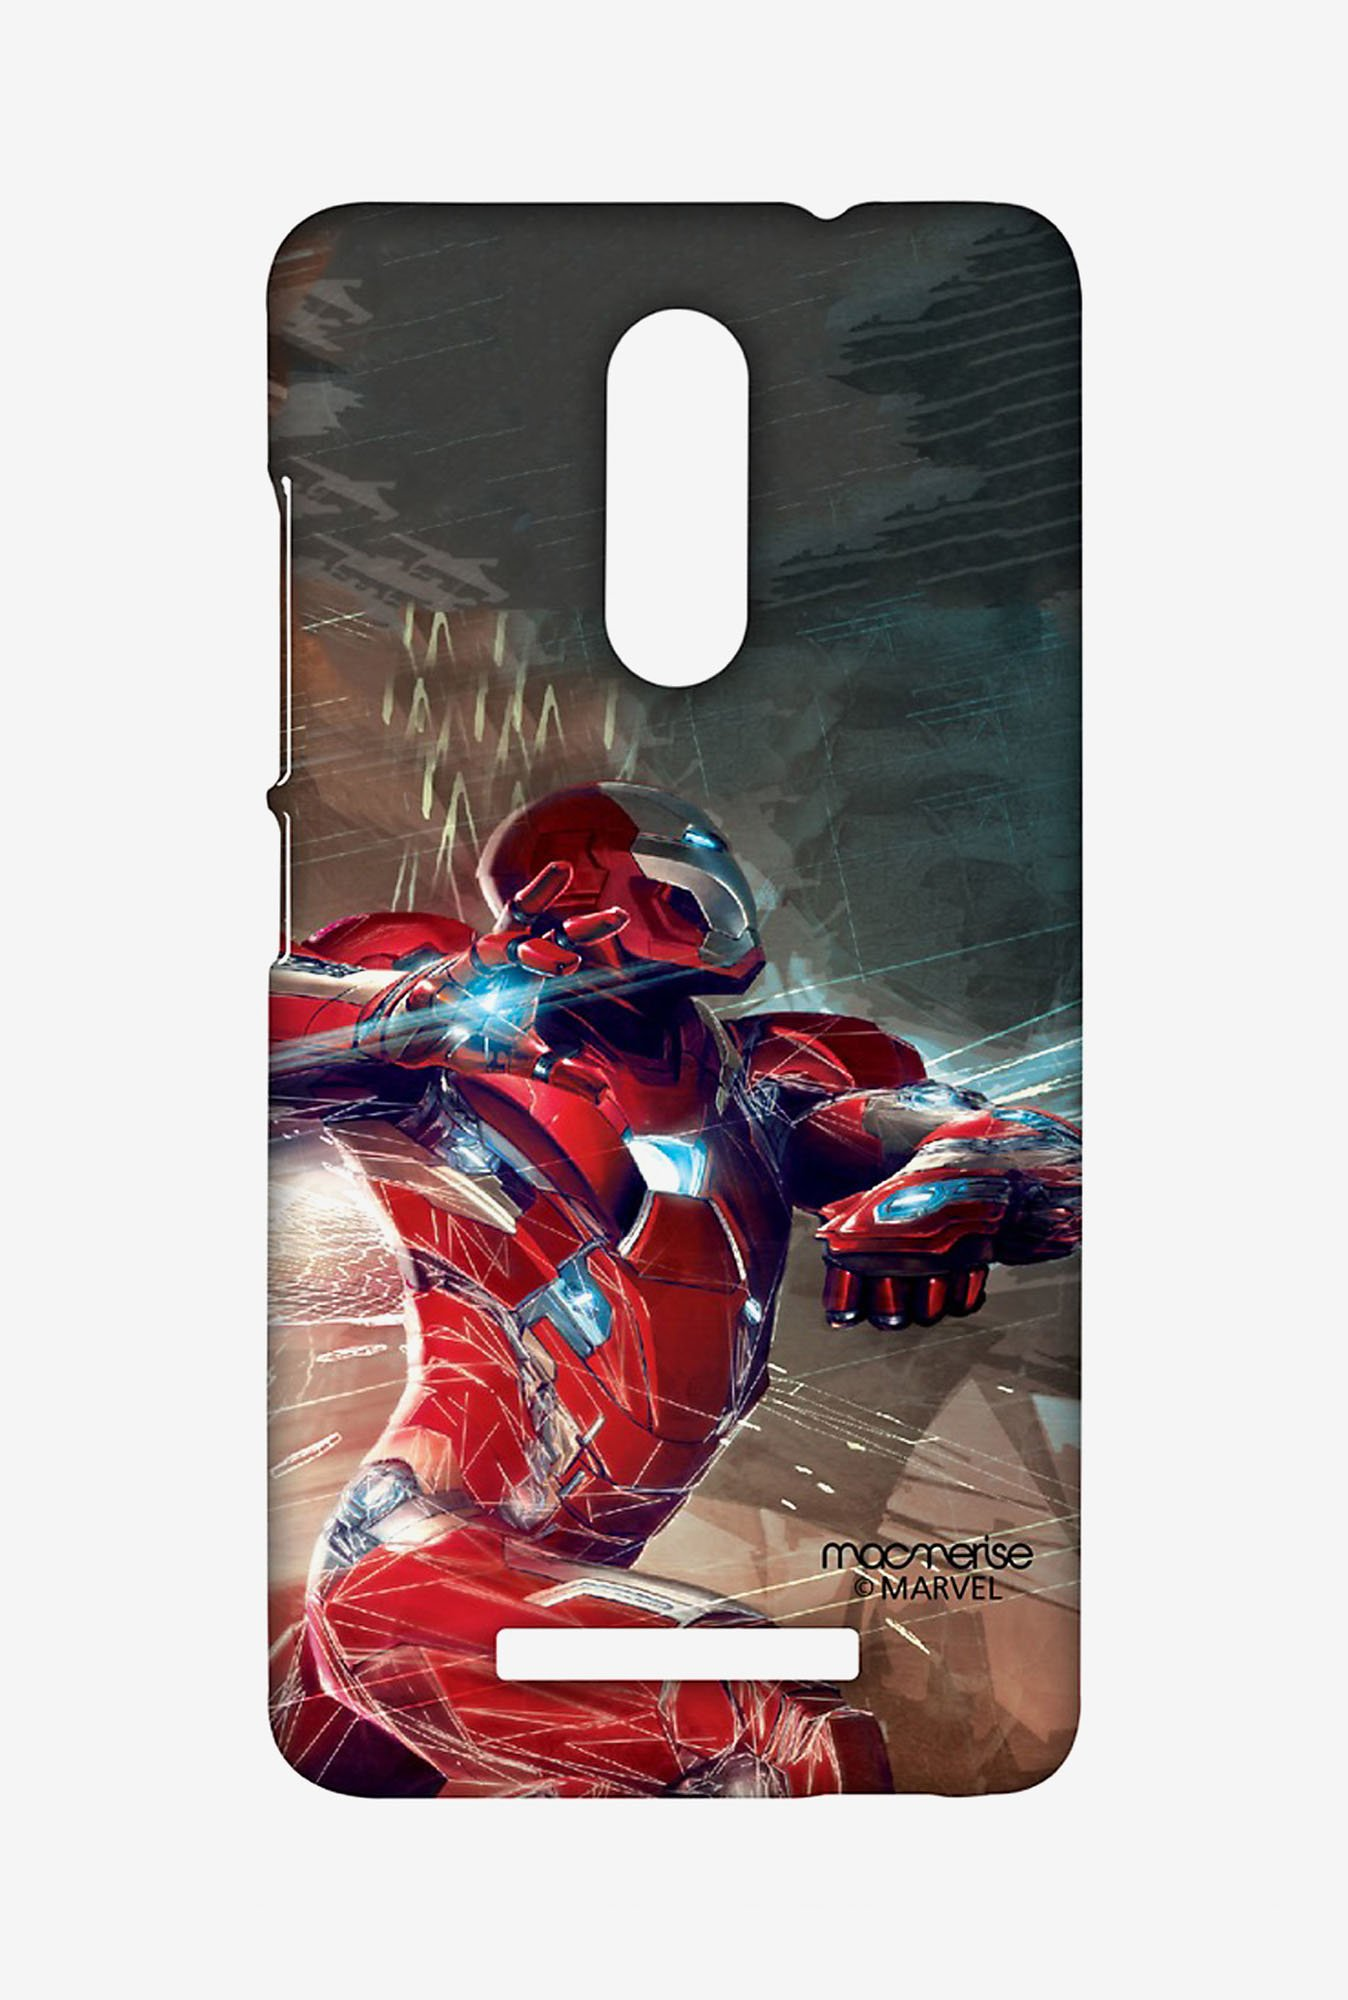 Macmerise XACN3SMM0470 Ironman Attack Sublime Case for Xiaomi Redmi Note 3